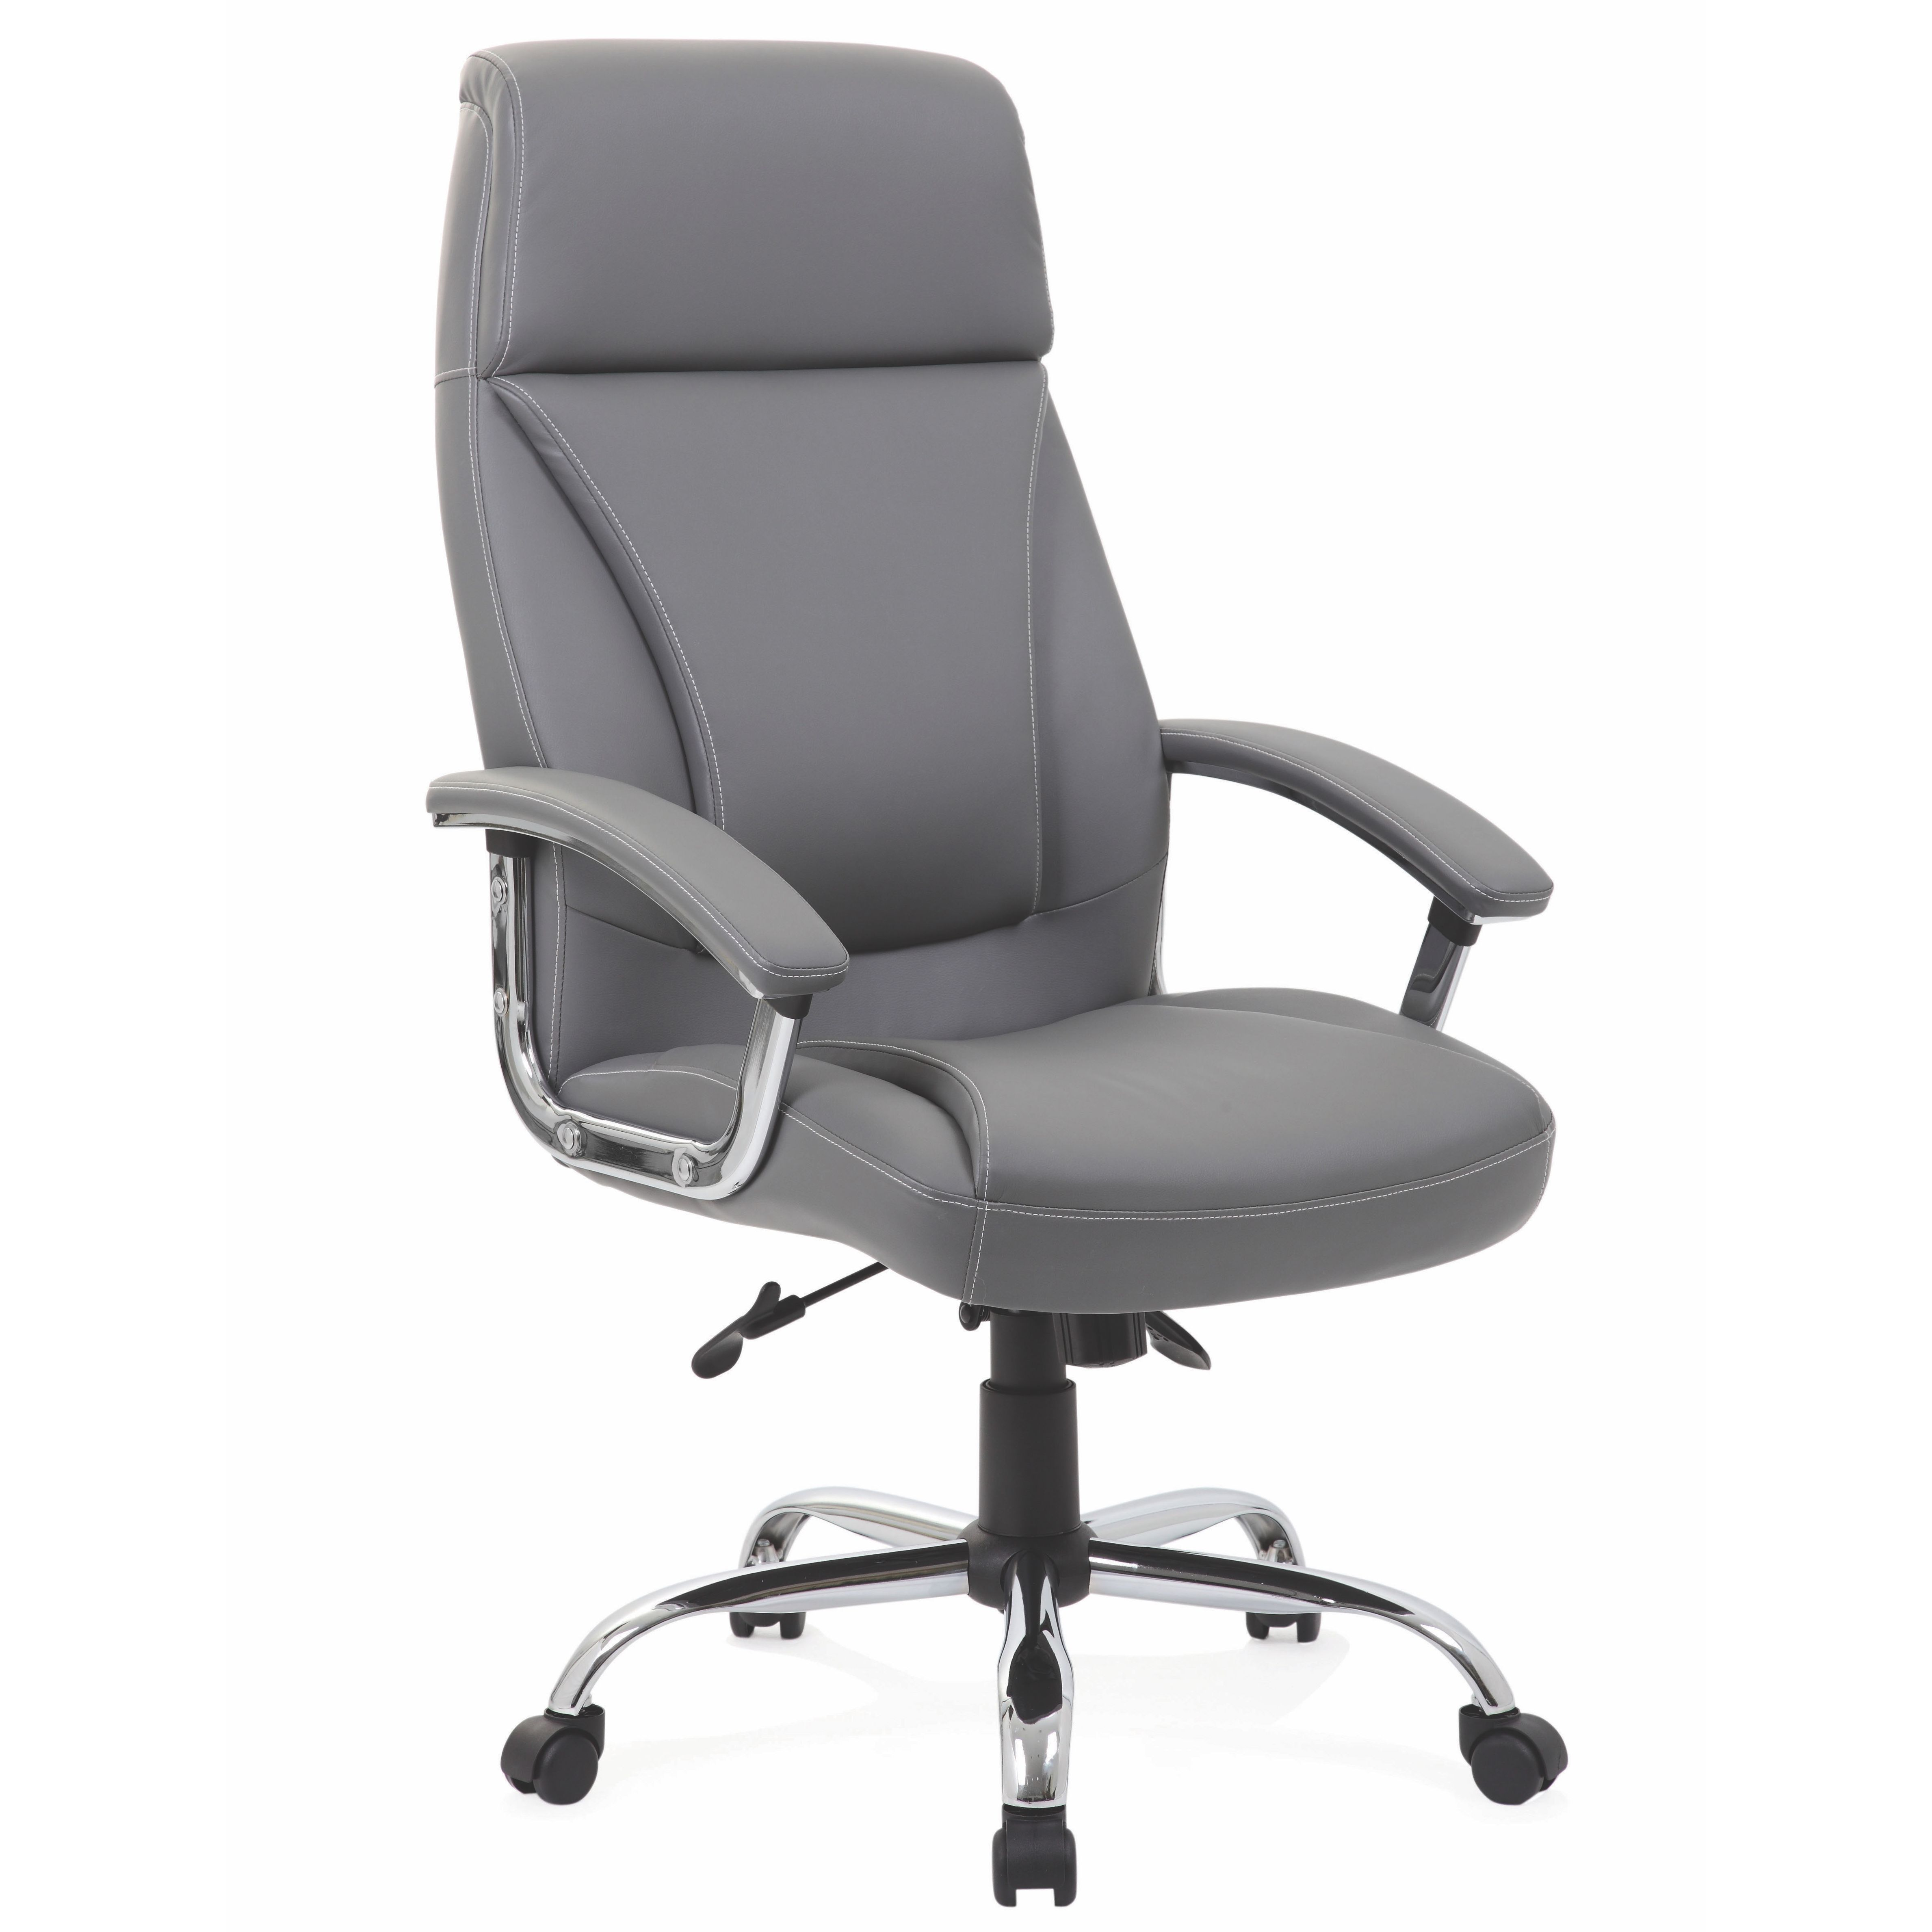 Penza Executive Grey Leather Chair In 2020 Grey Leather Chair